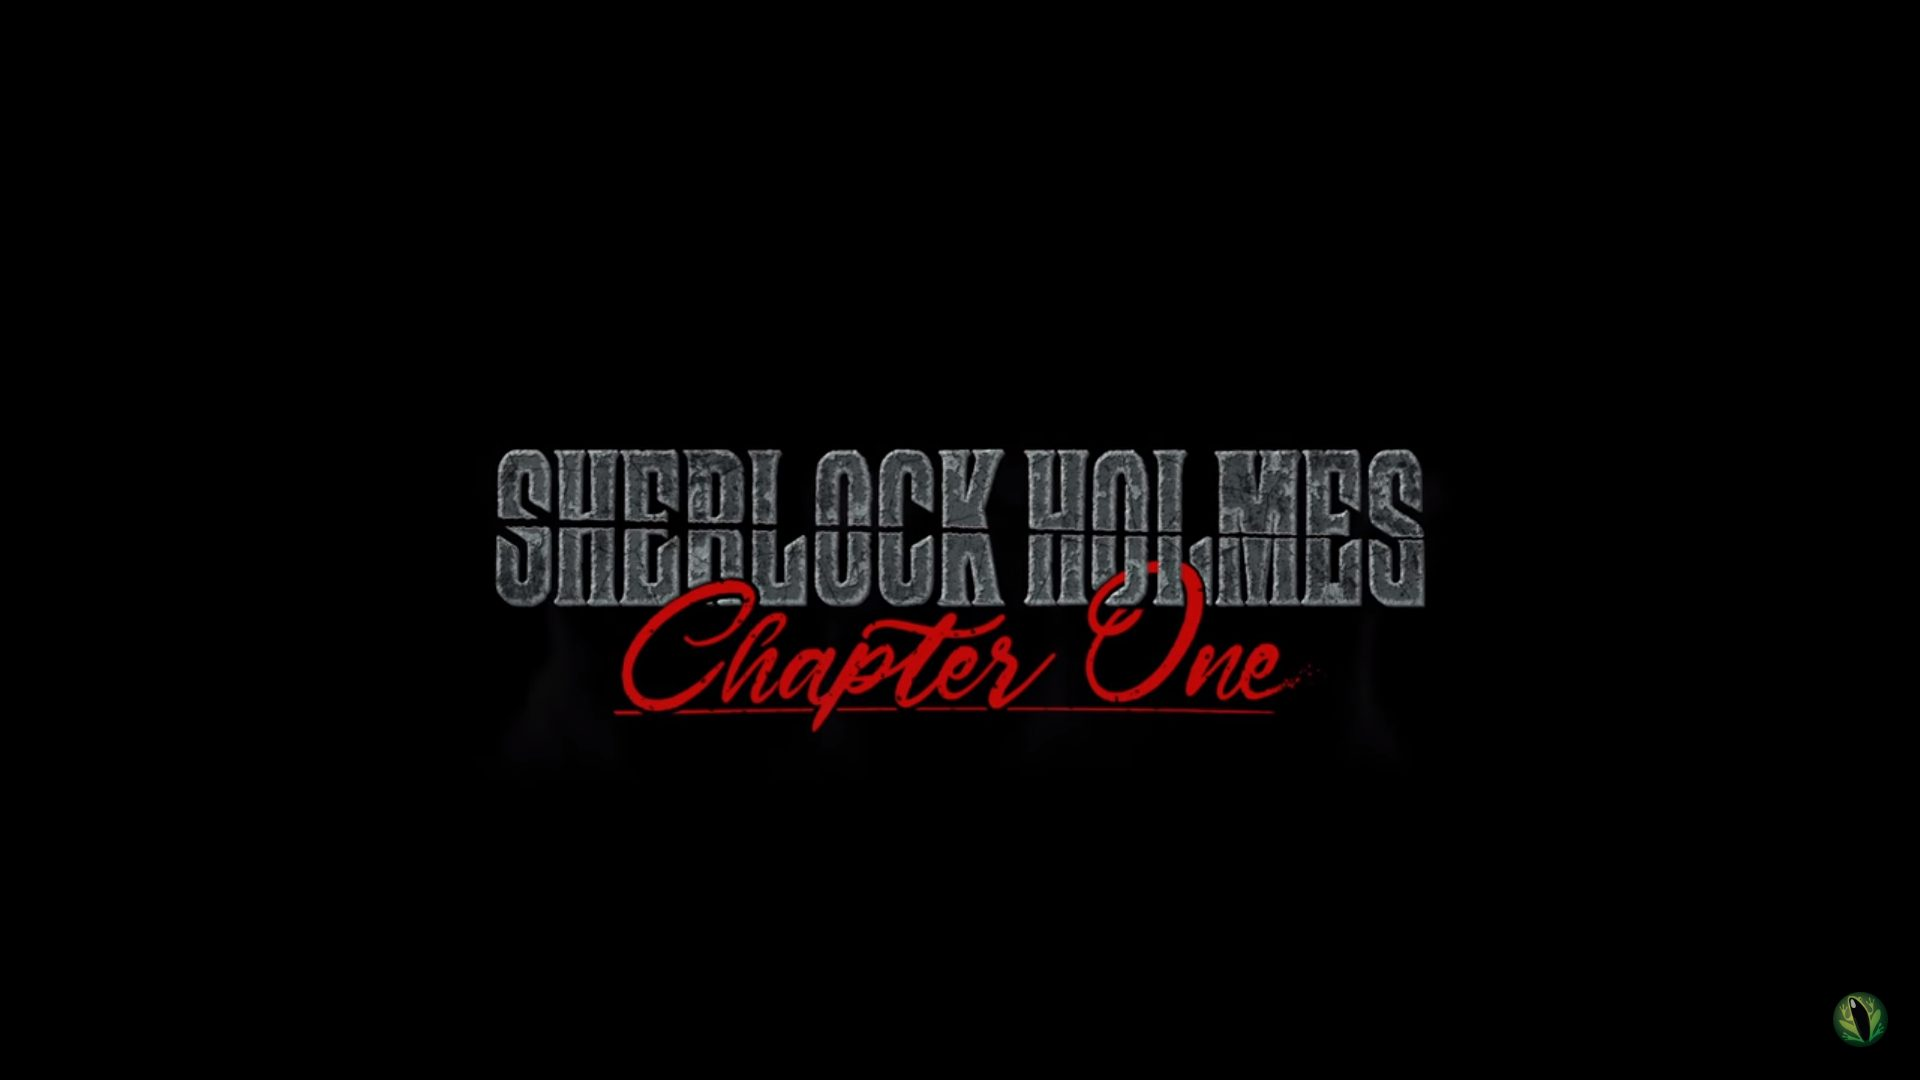 sherlock holmes chapter one trailer